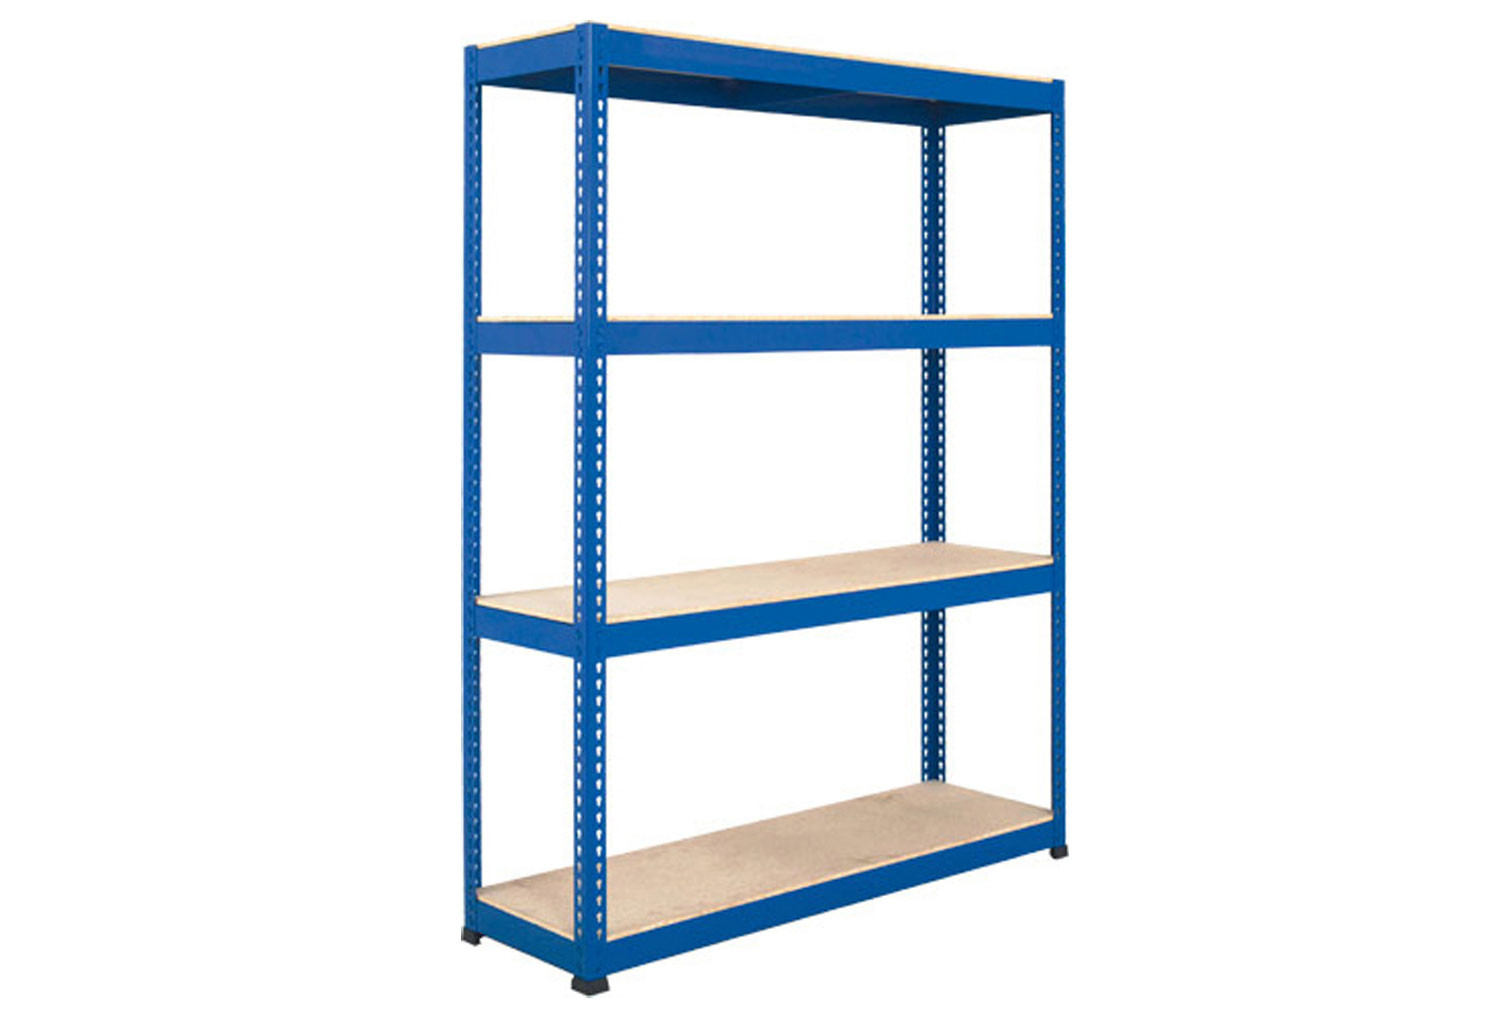 Rapid 1 Heavy Duty Shelving With 4 Chipboard Shelves 1830wx2440h (Blue)